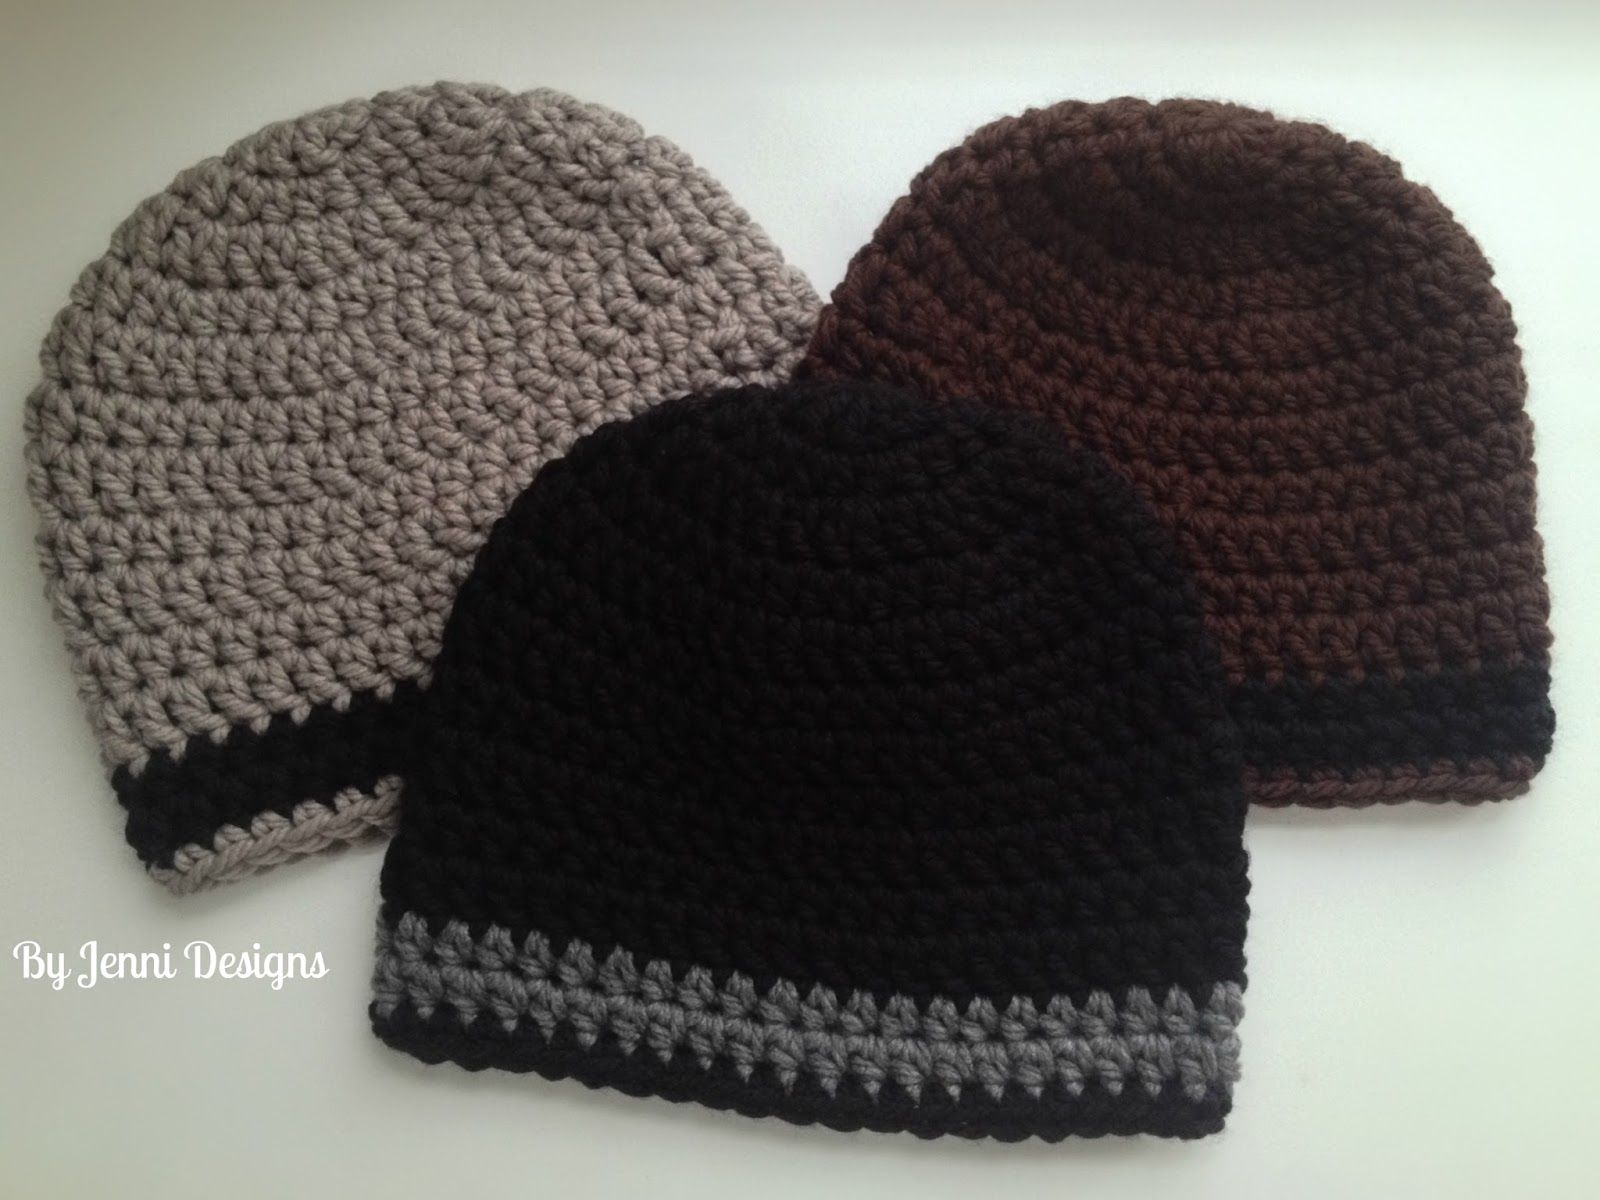 Free Crochet Pattern For A Mens Size Beanie Hat Using Chunky Yarn